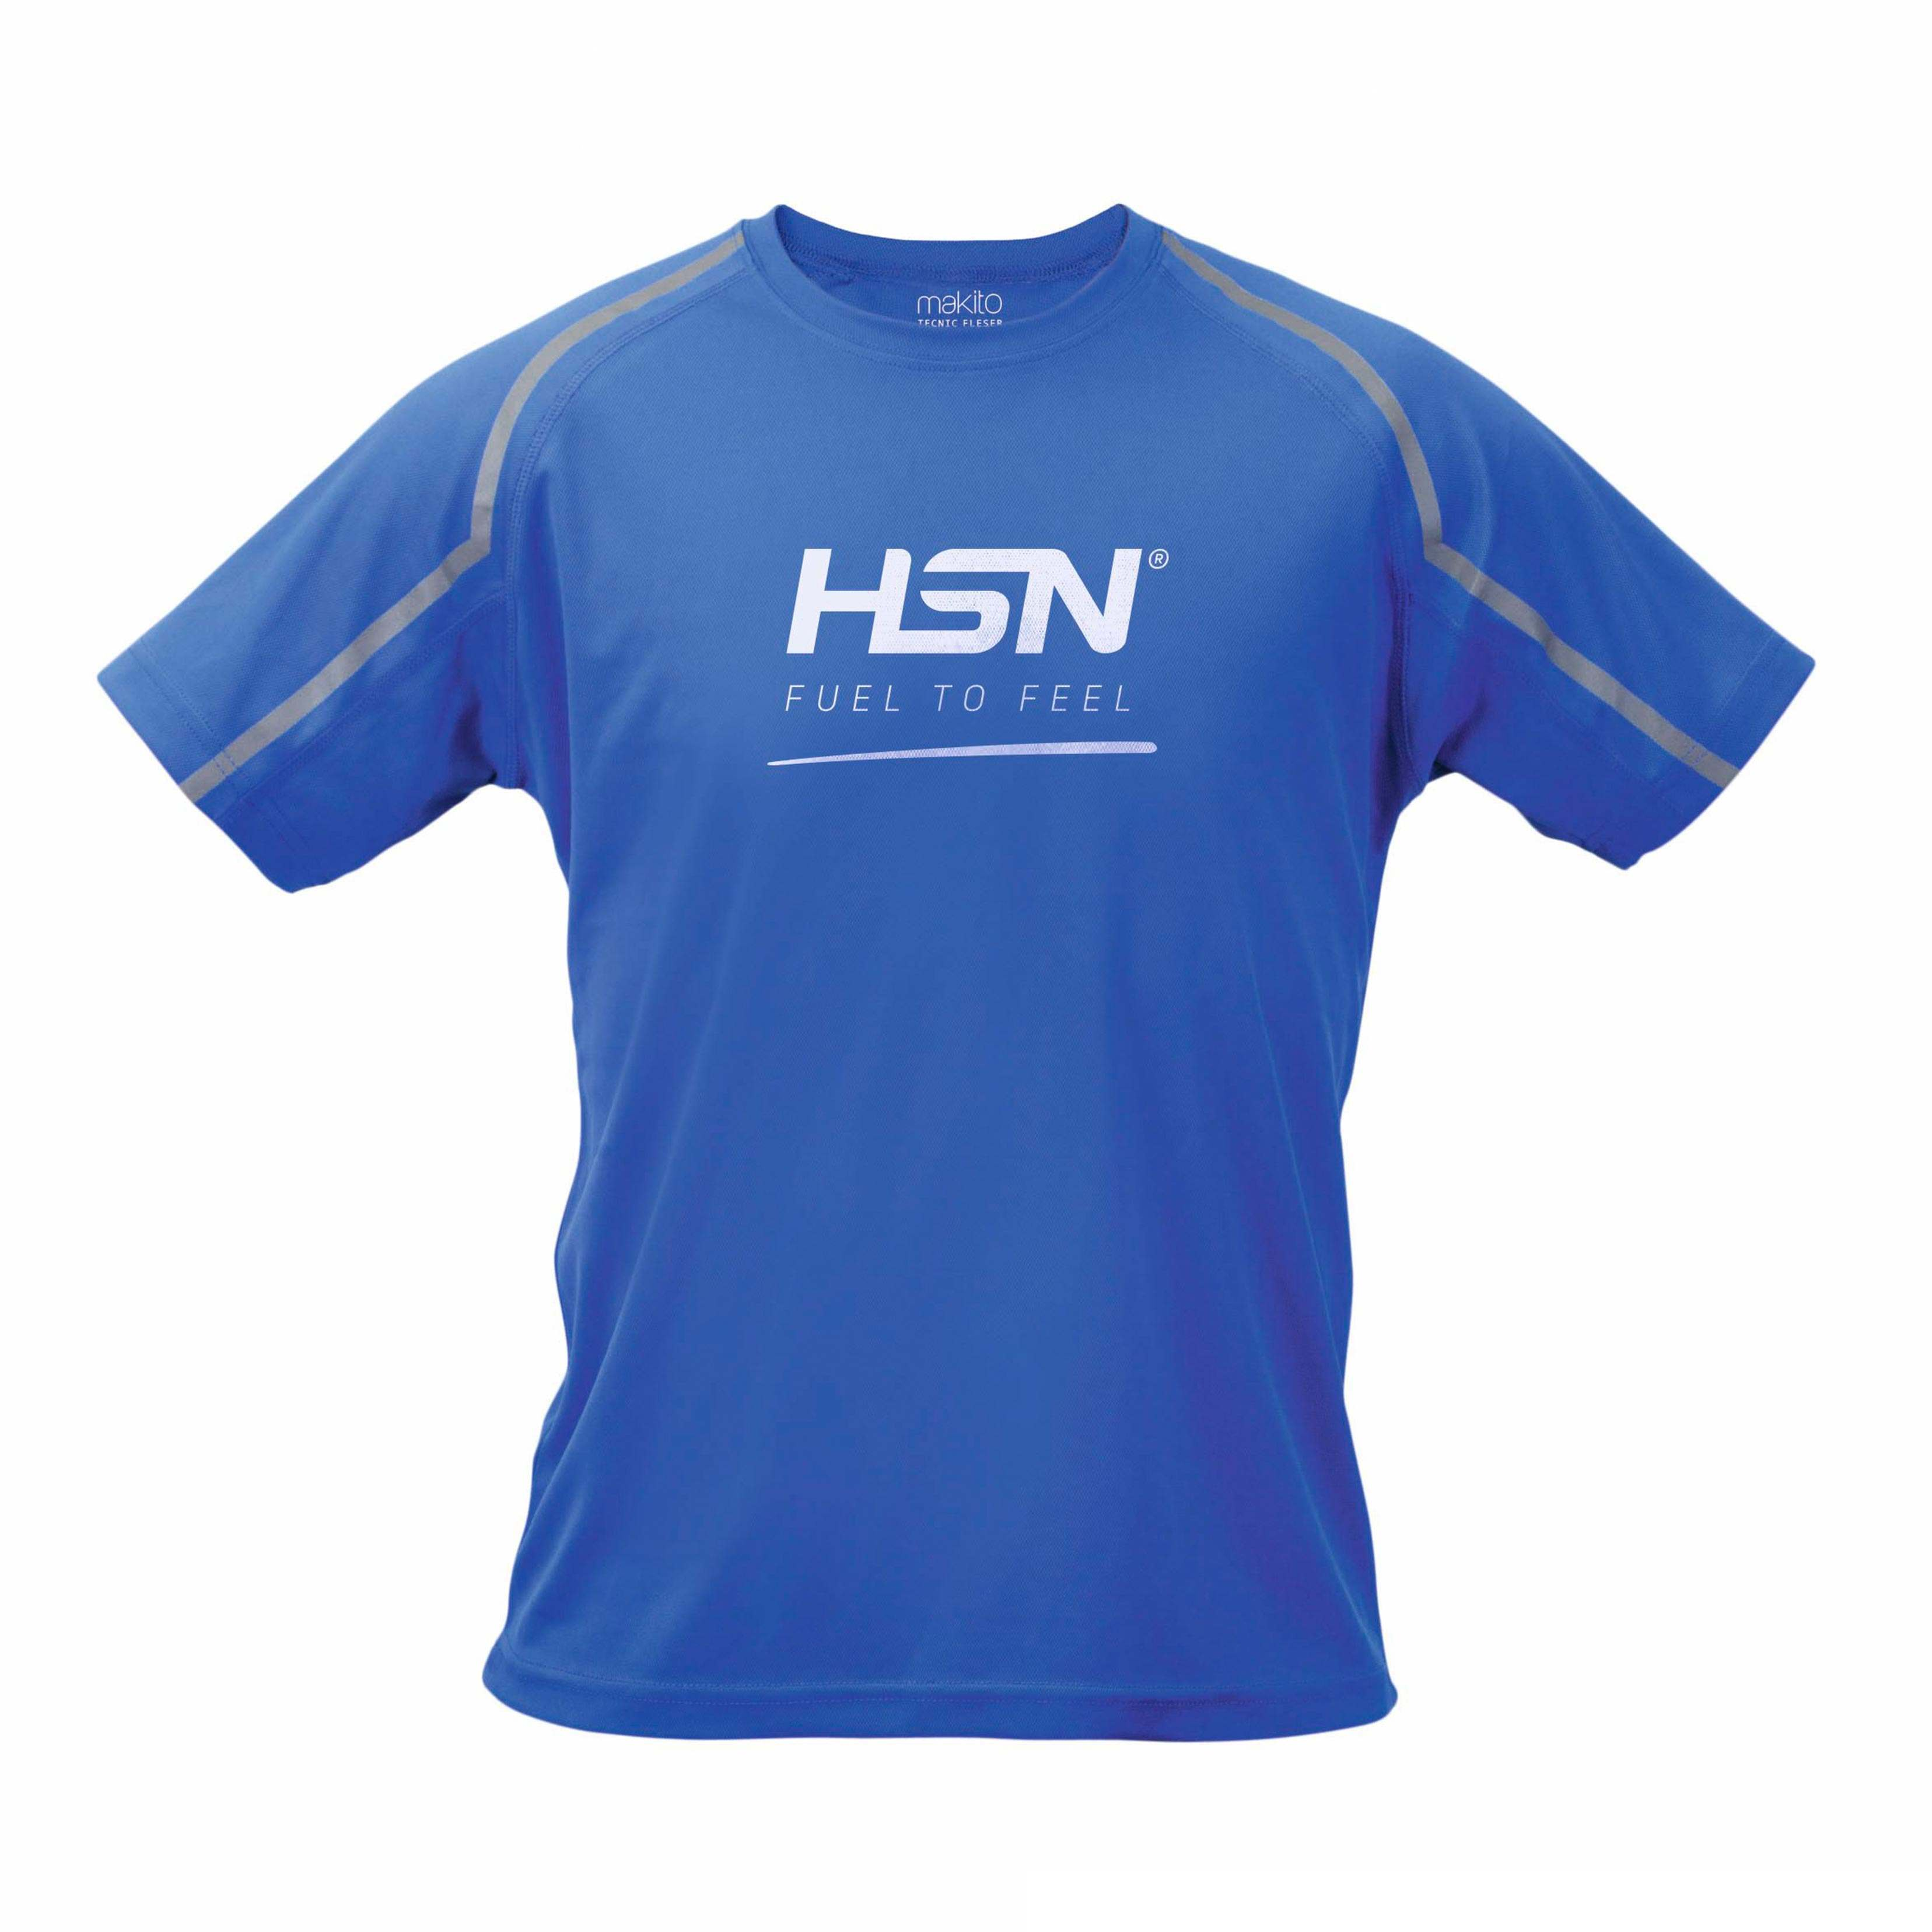 T-SHIRT TÉCNICA HSN FUEL TO FEEL AZUL - S